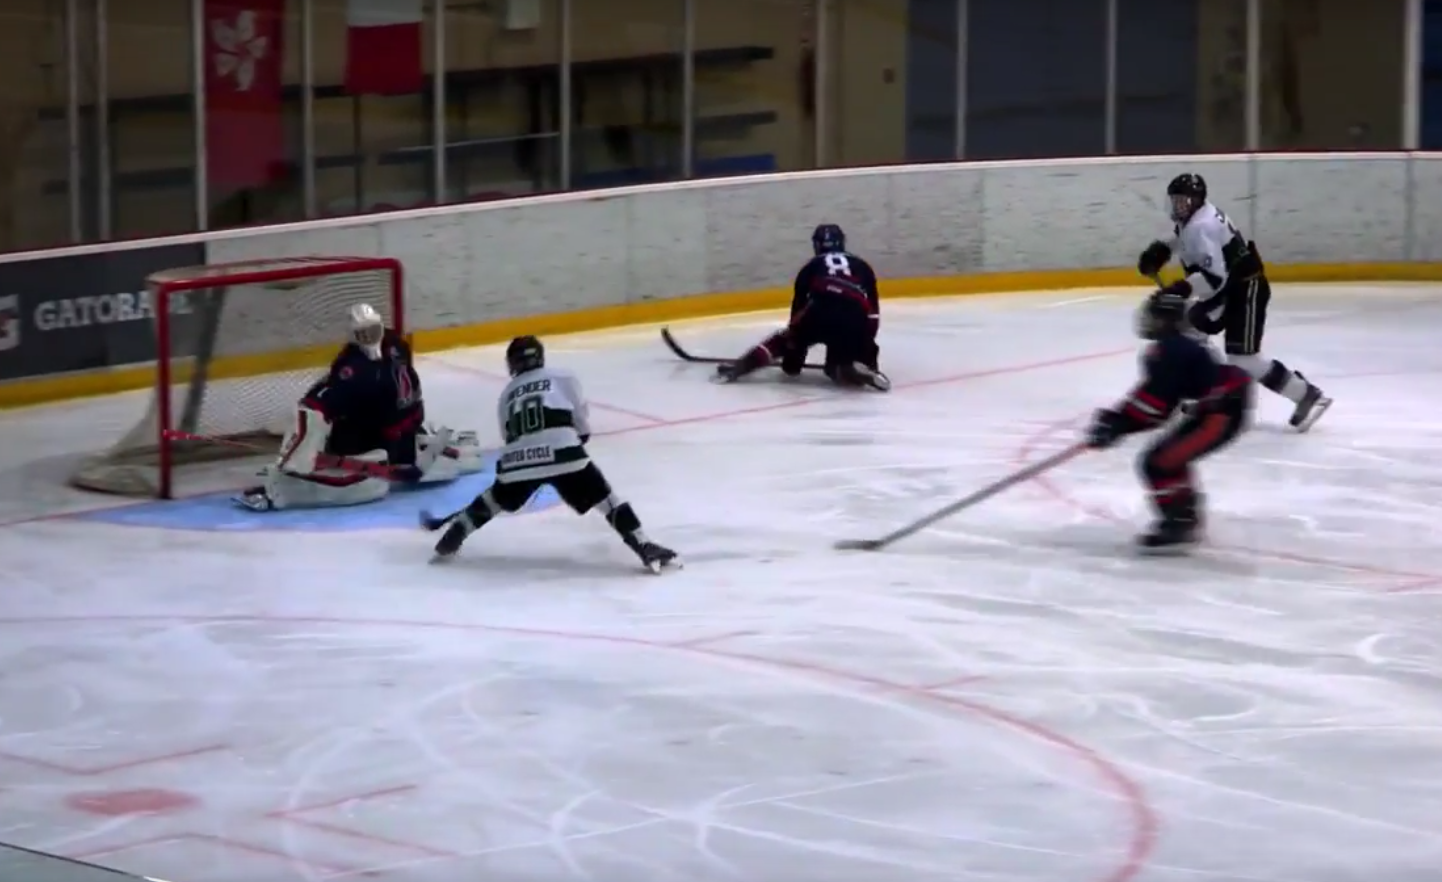 Video Kamloops Most Famous Hockey Tournament Preparing For 50th